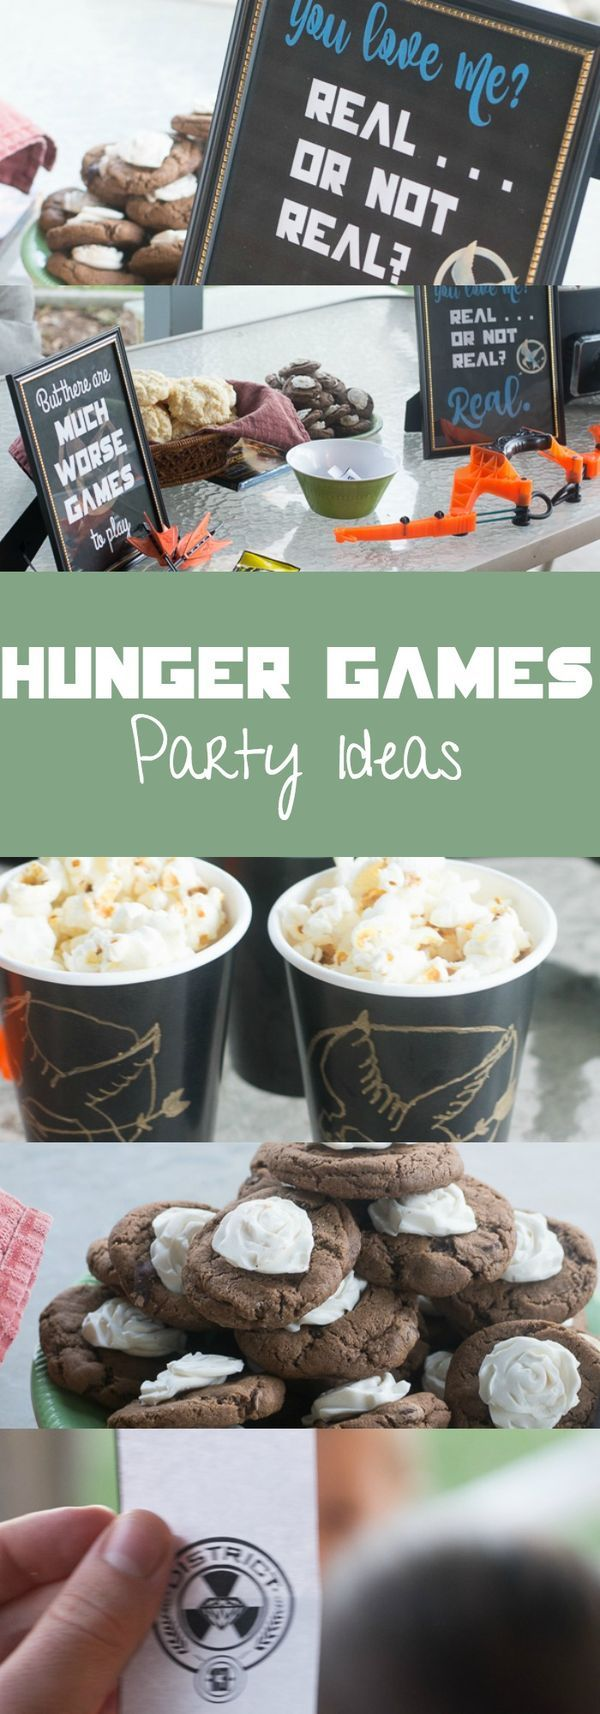 Lots of fun Hunger Games party ideas - Hunger Games themed food, decor, and games!